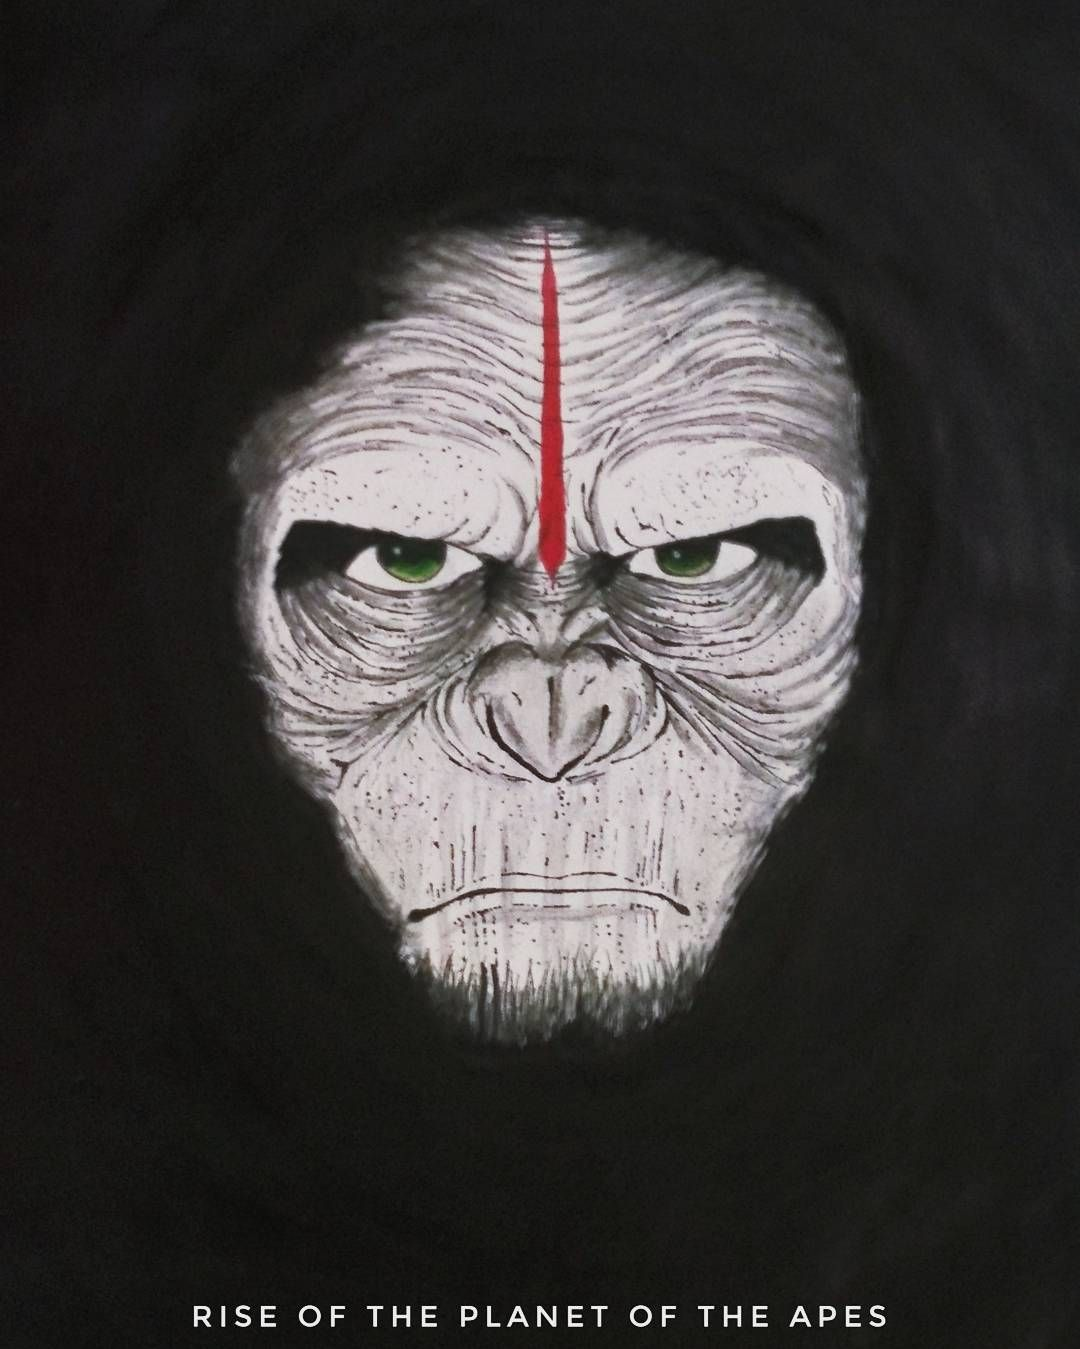 Meet Ceaser From Rise Of The Planet Of The Apes Artwork Art Planetoftheapes Picoftheday Manga Anime Blackandwhit Planet Of The Apes Artwork Art